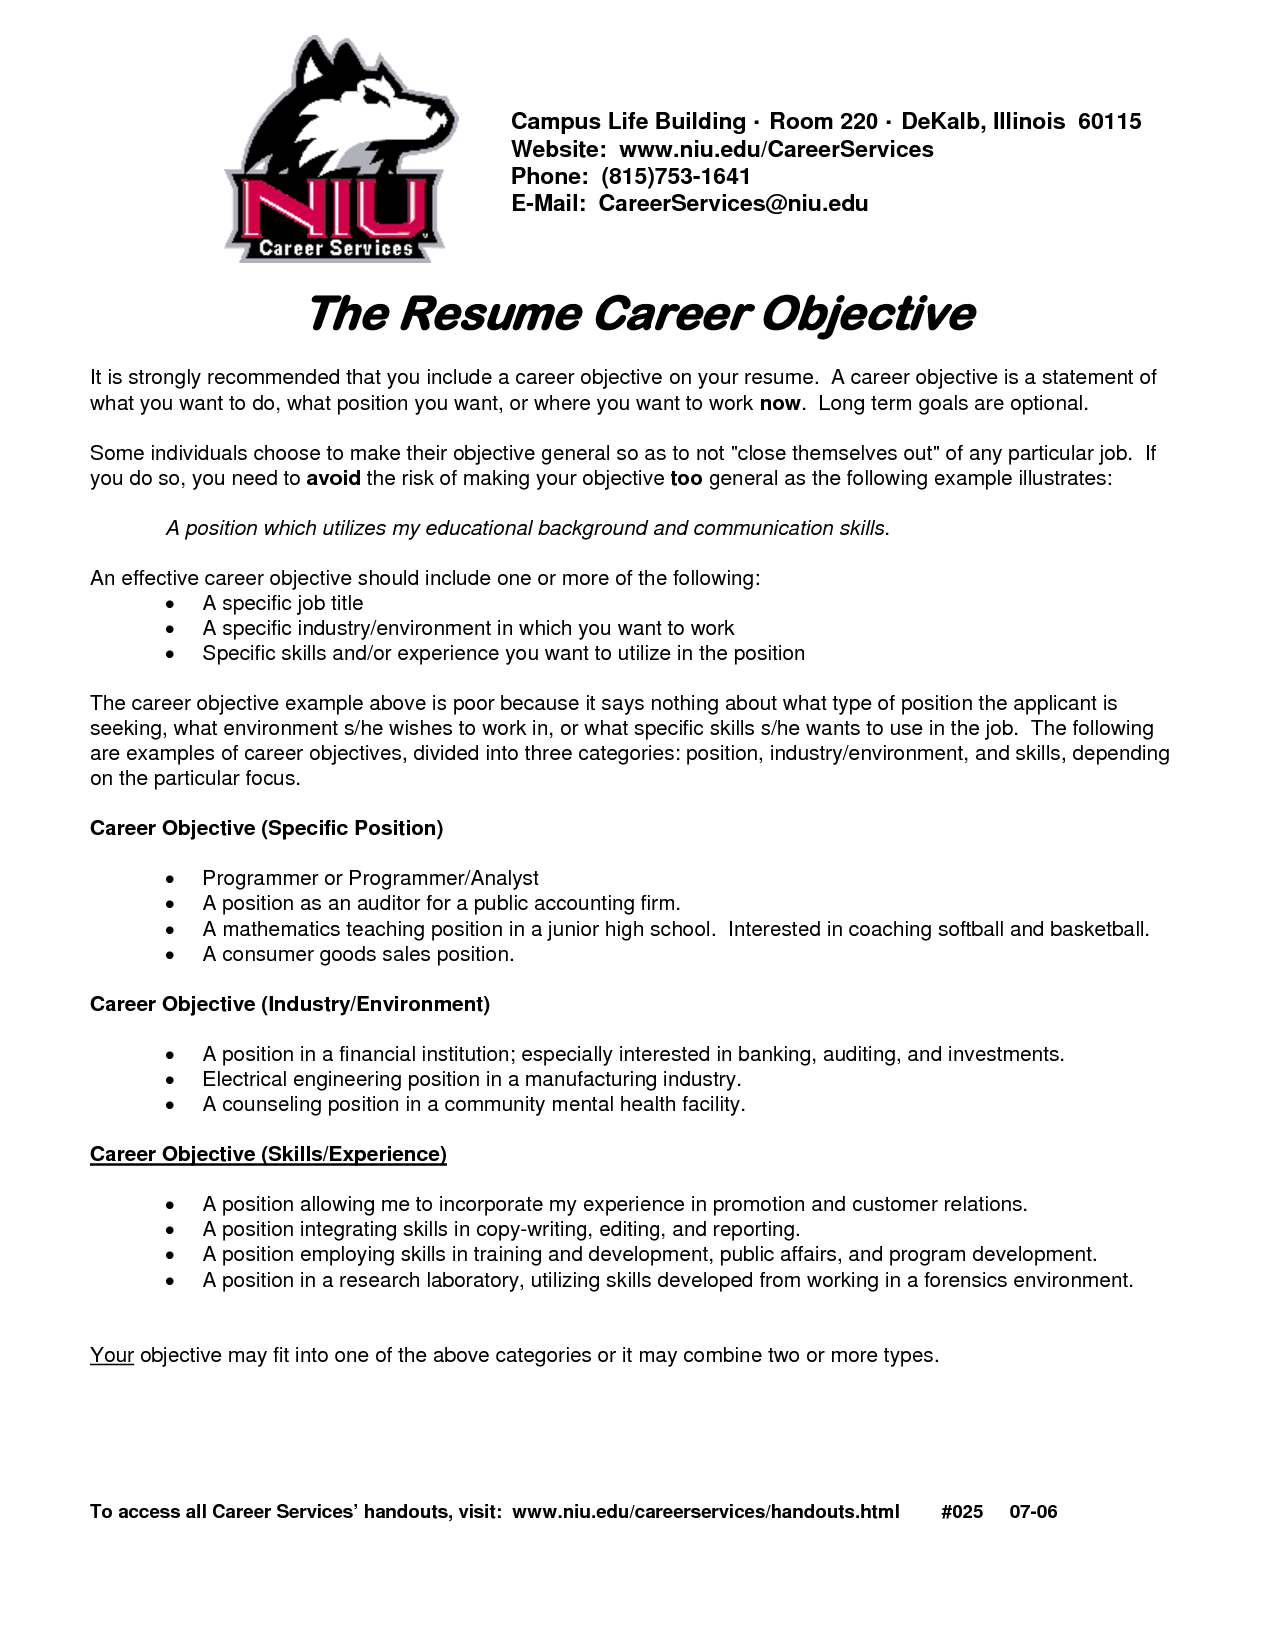 sample job resume objective statement resume format catchy resume objectives samples of career objectives on resumes